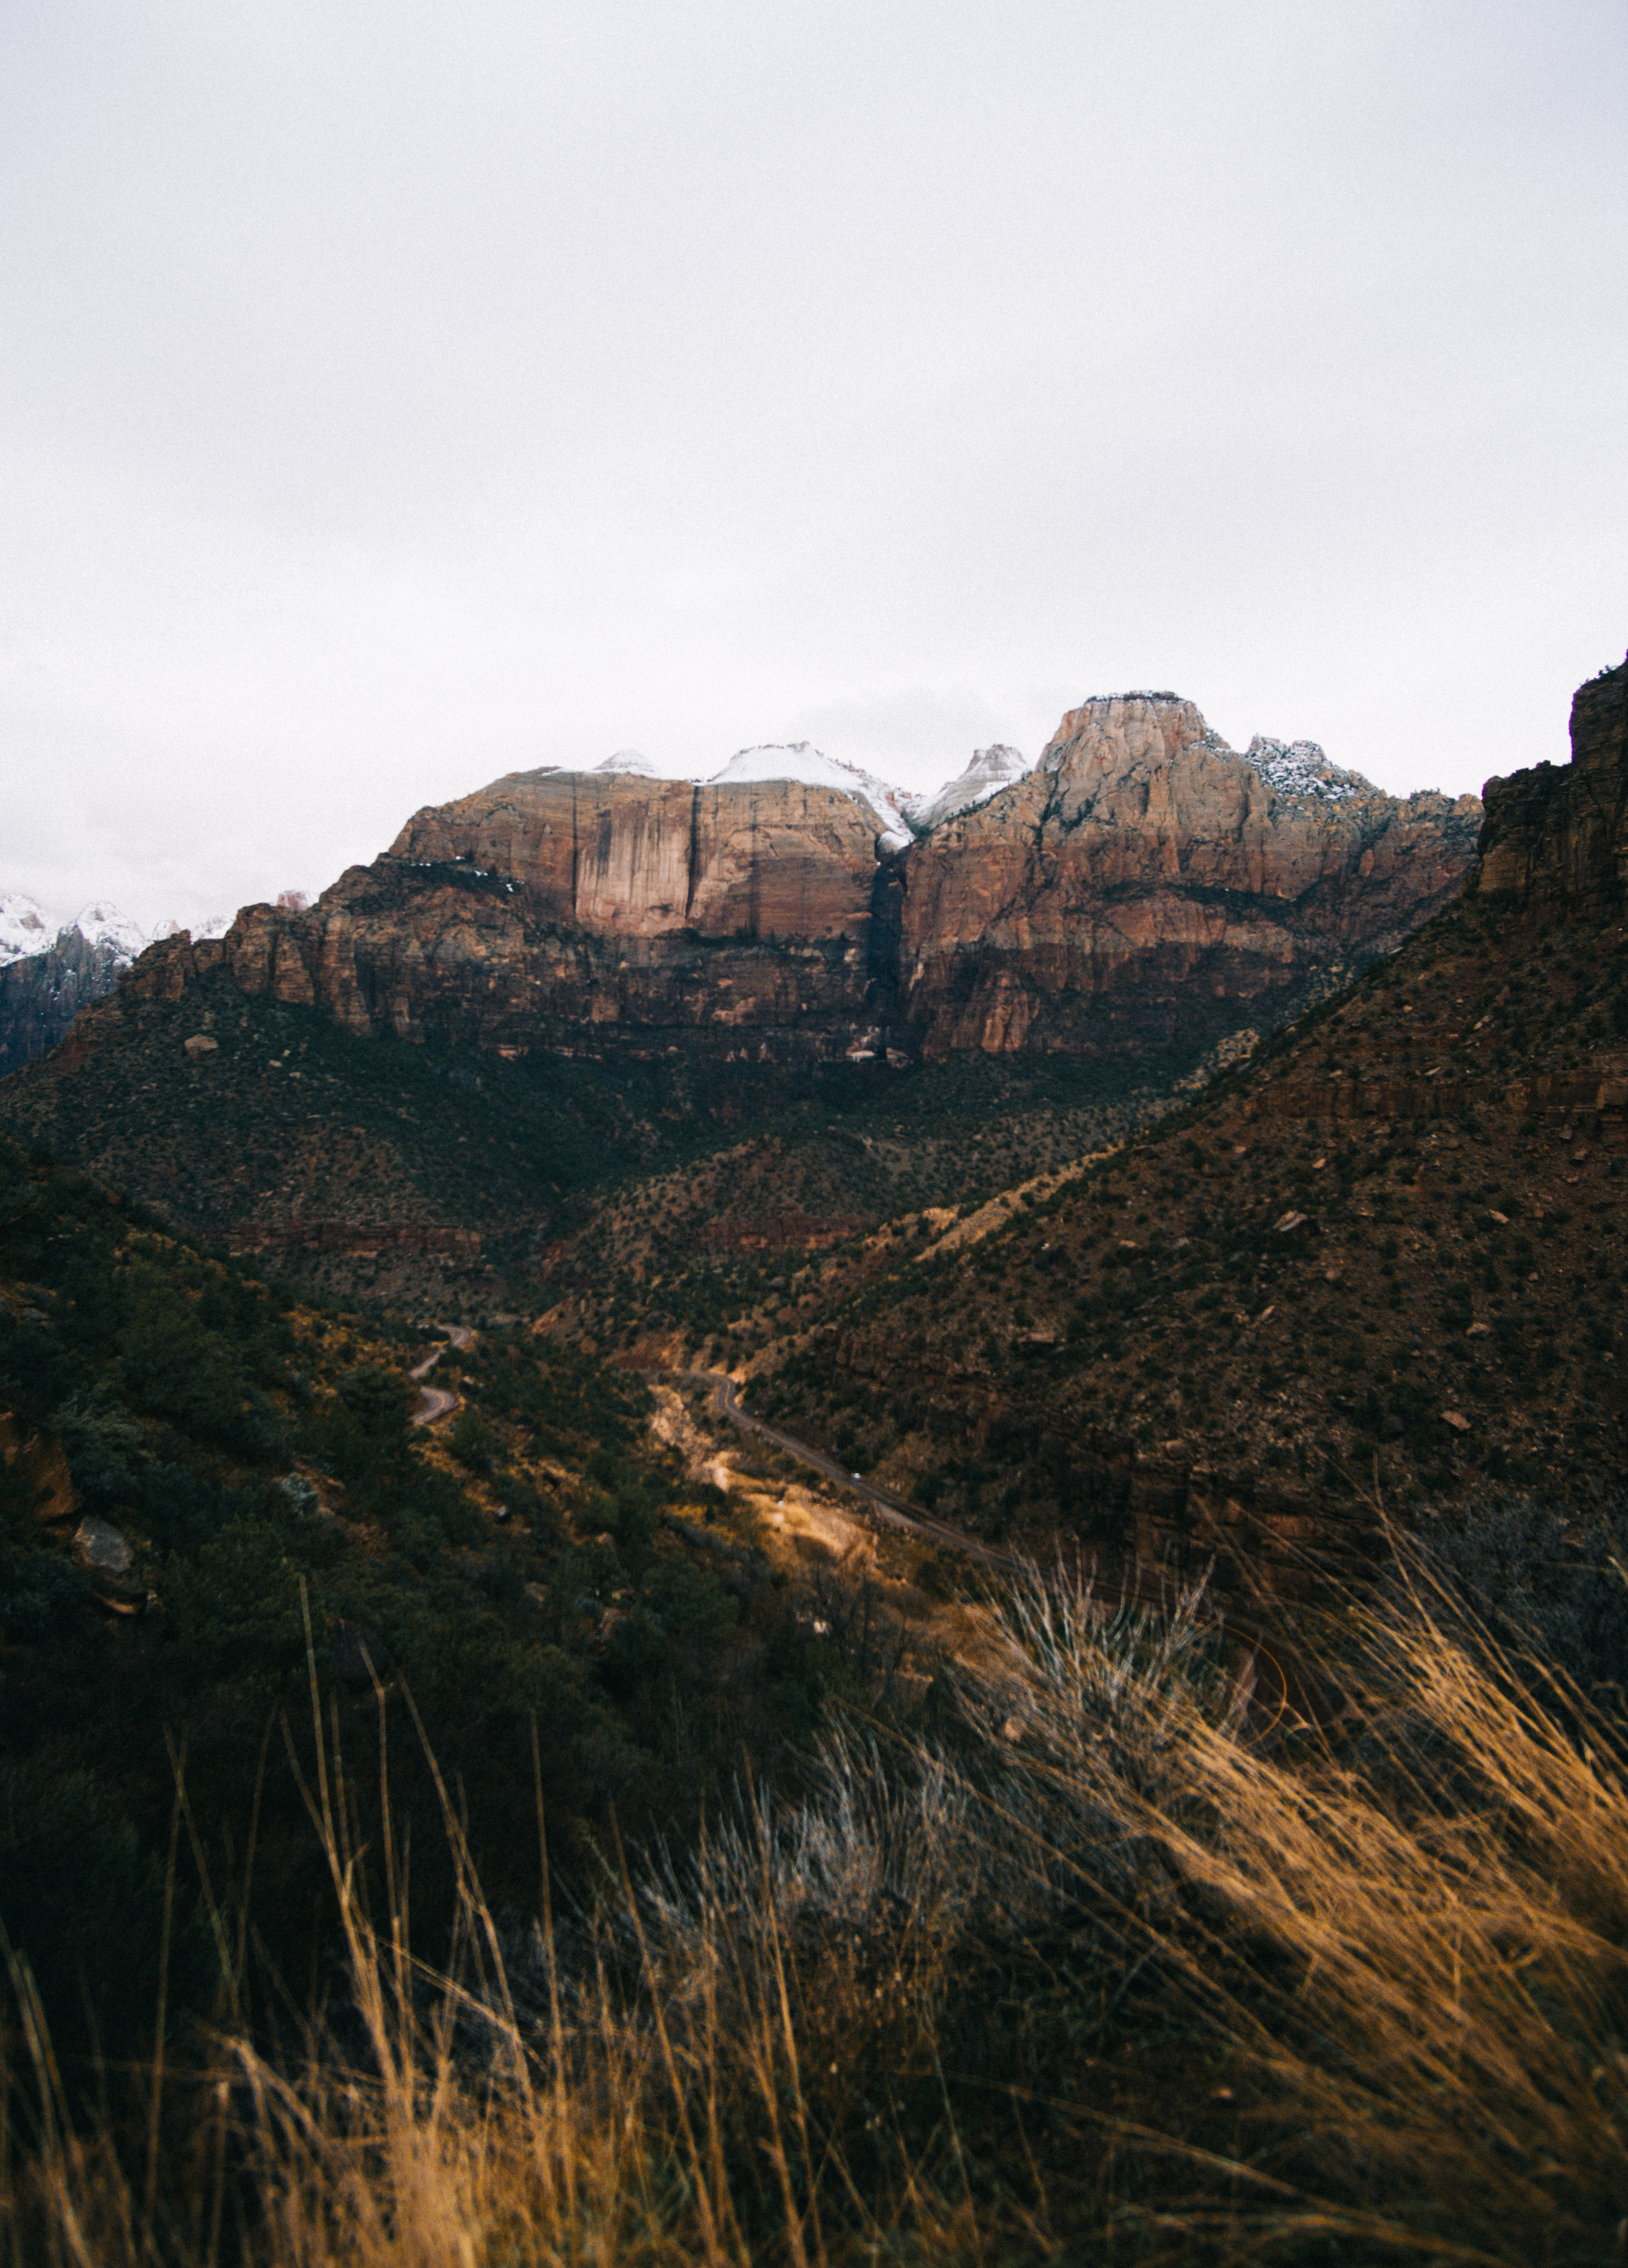 View from a mountain valley on a steep red rock face in Zion National Park